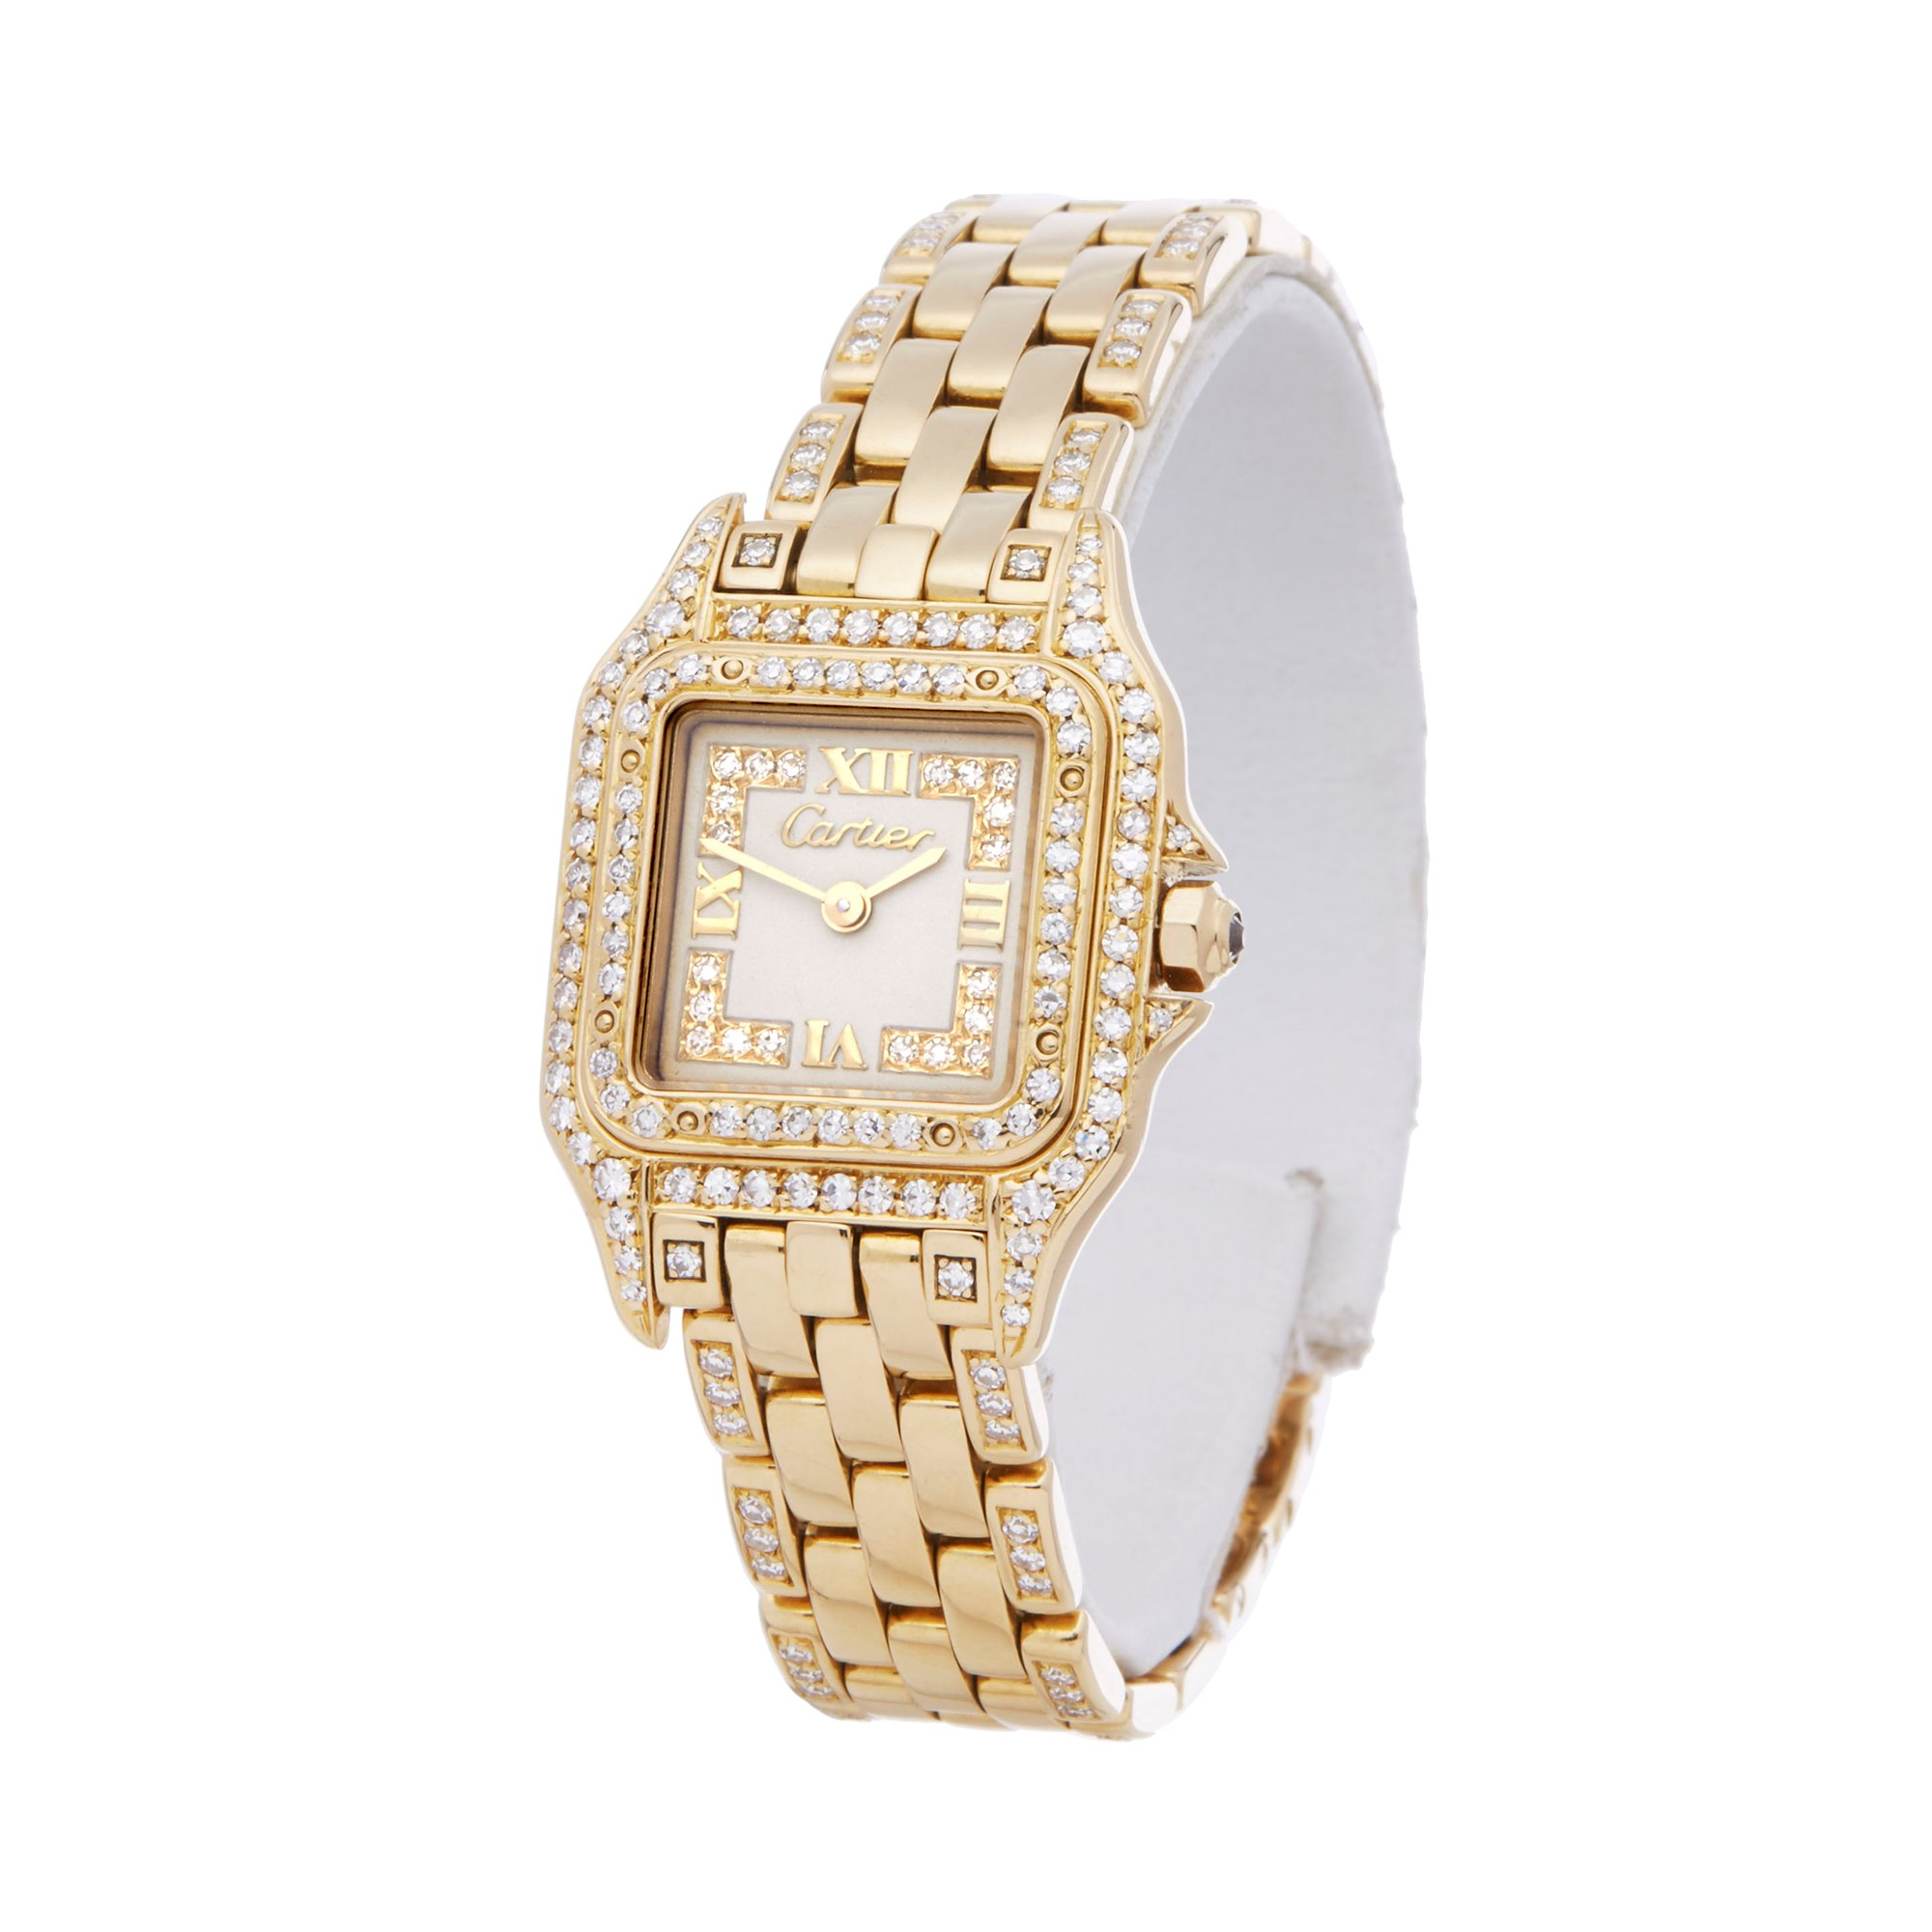 Cartier Panthère Diamond 18k Yellow Gold WF3010FE or 1280